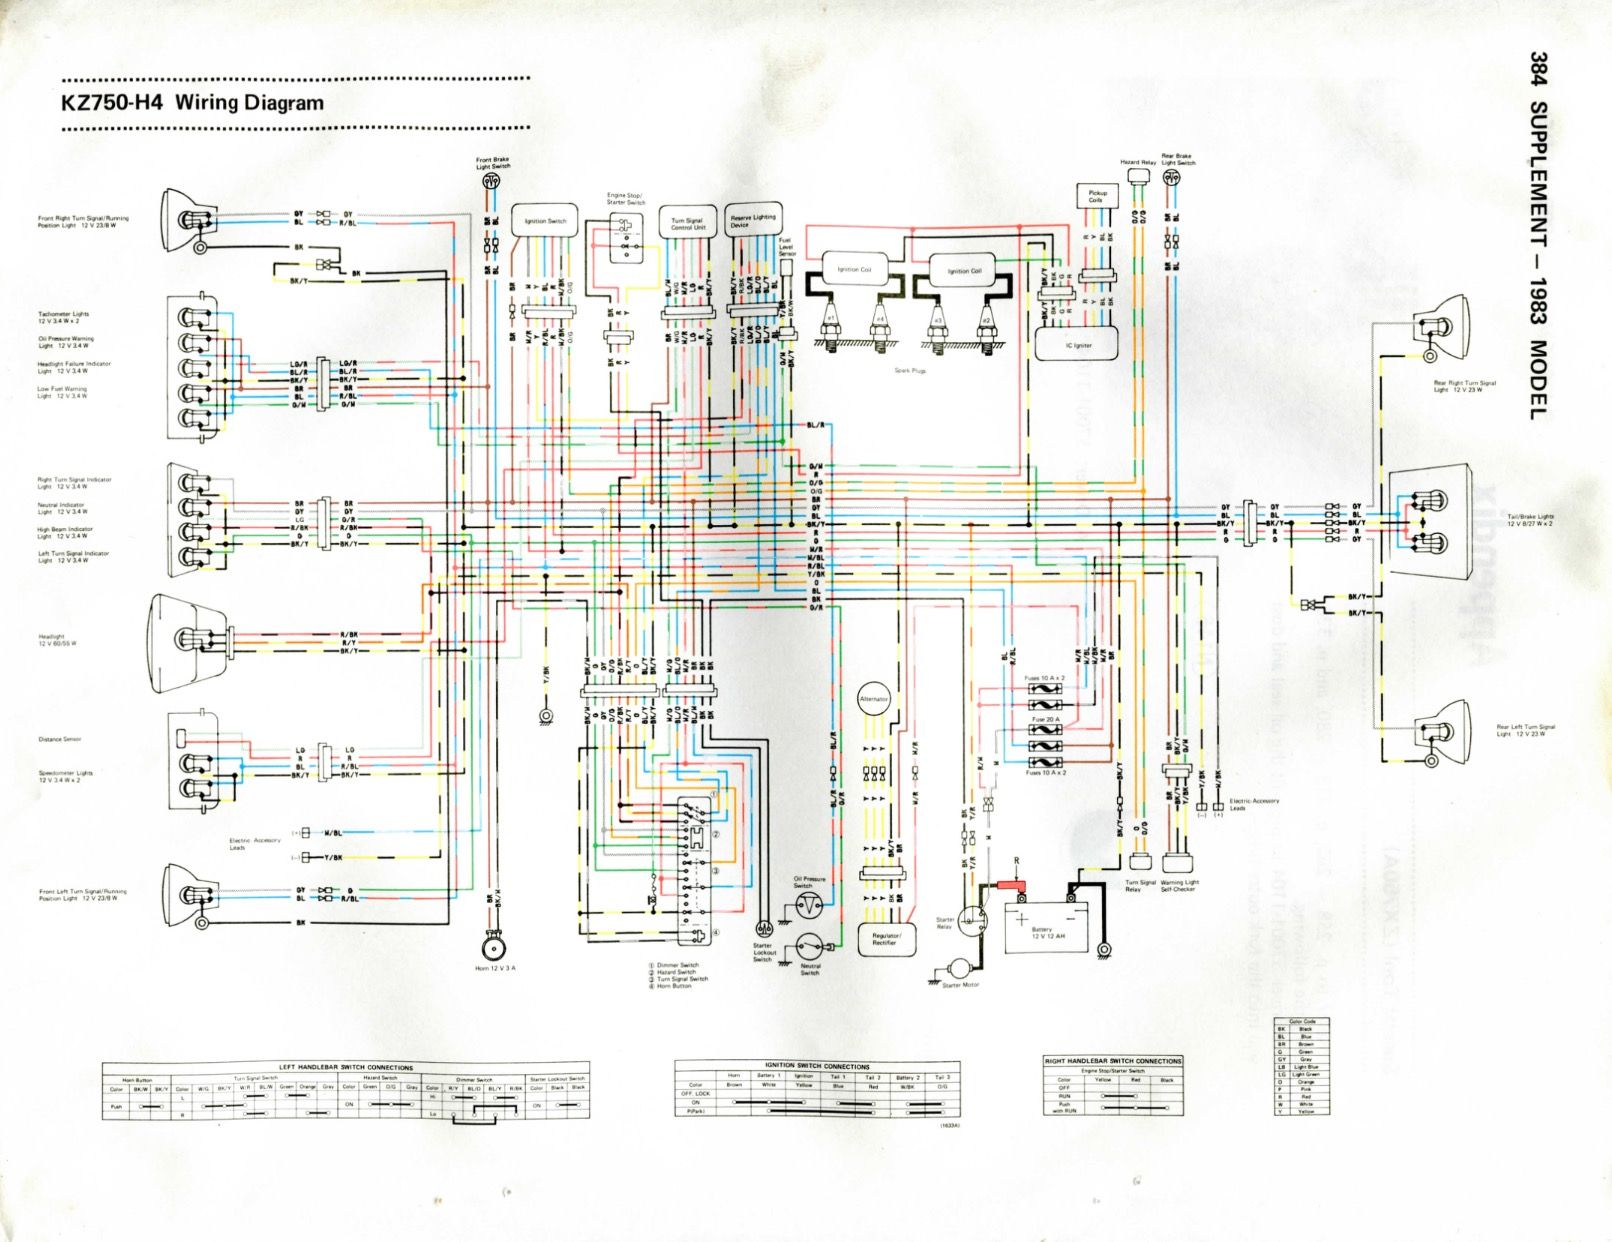 wiring diagram for 1983 kawasaki 750 ltd get free moreover kawasaki kawasaki brute force 750 wiring diagram kawasaki 750 wiring diagram [ 1612 x 1242 Pixel ]